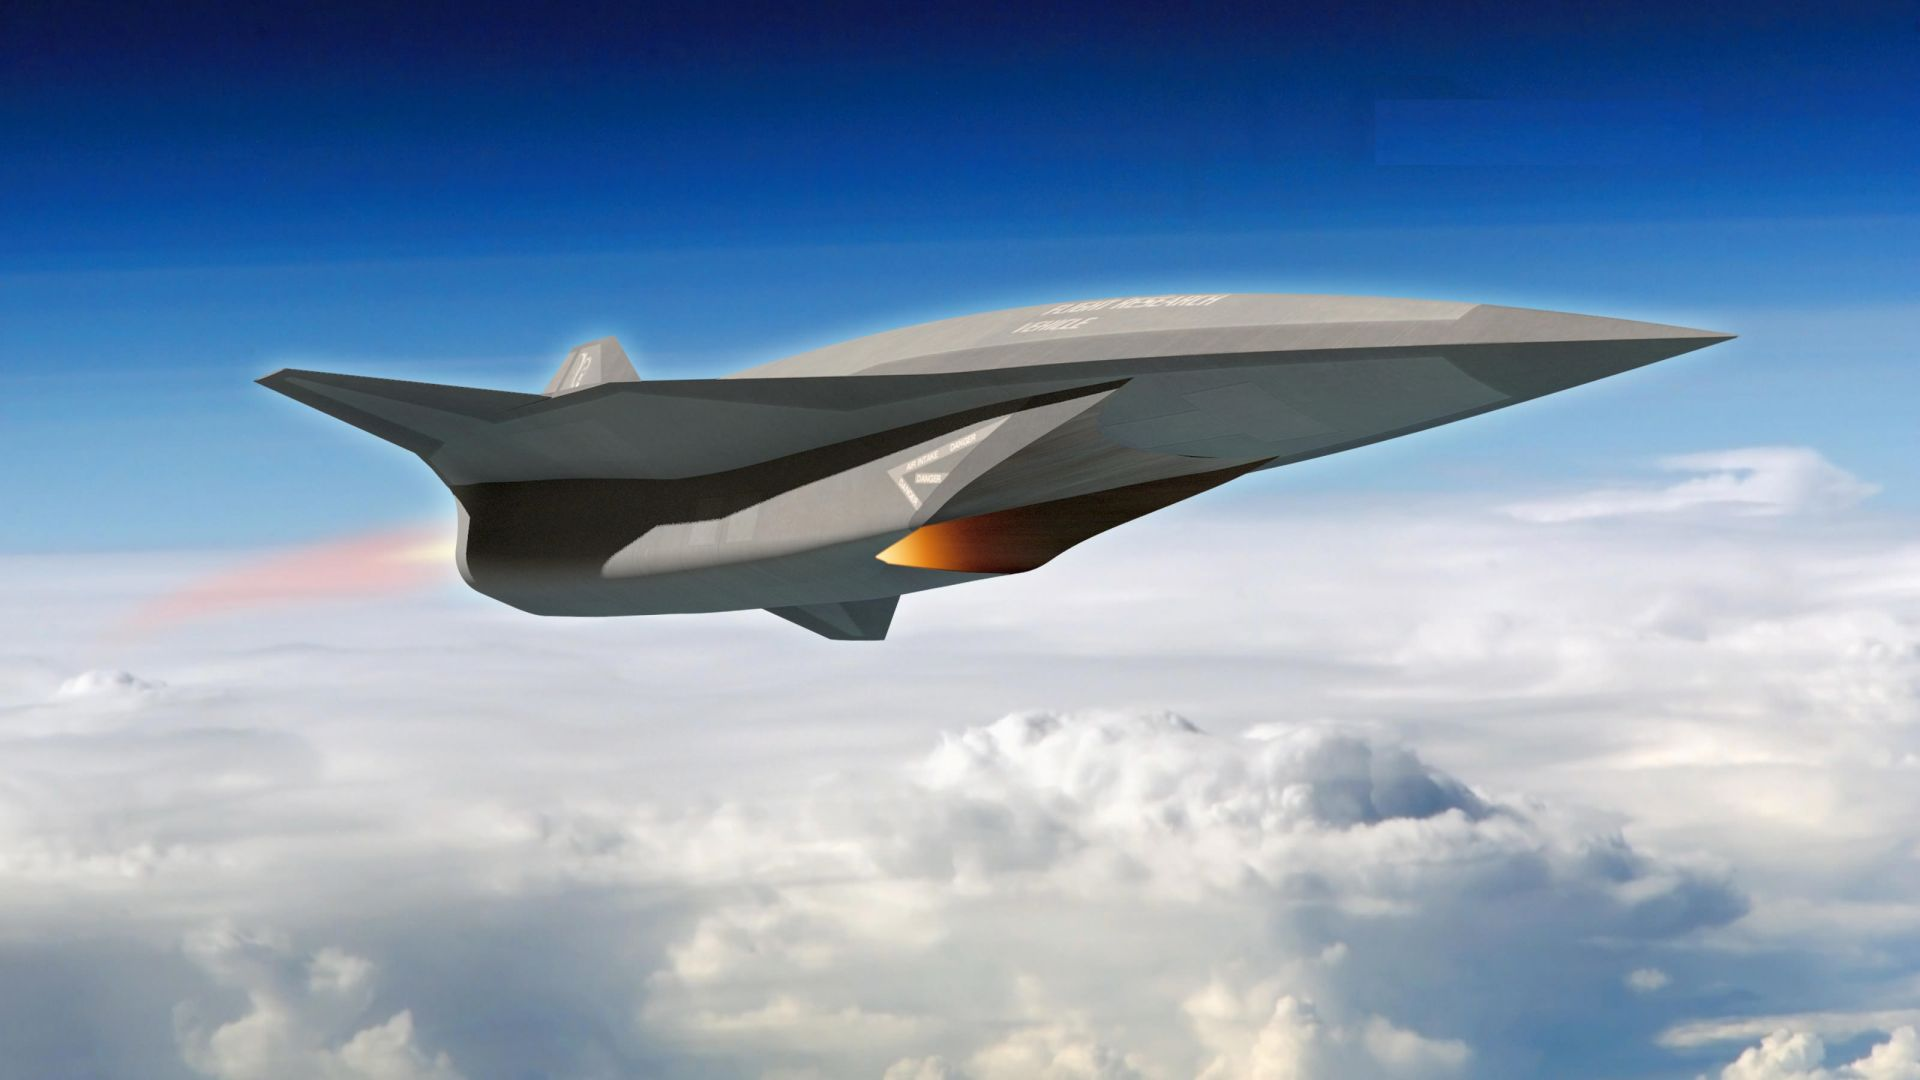 SR-72, Lockheed, Hypersonic Unmanned Reconnaissance Aircraft, Darpa, future aircraft, jet, plane, aircraft, U.S. Air Force (horizontal)